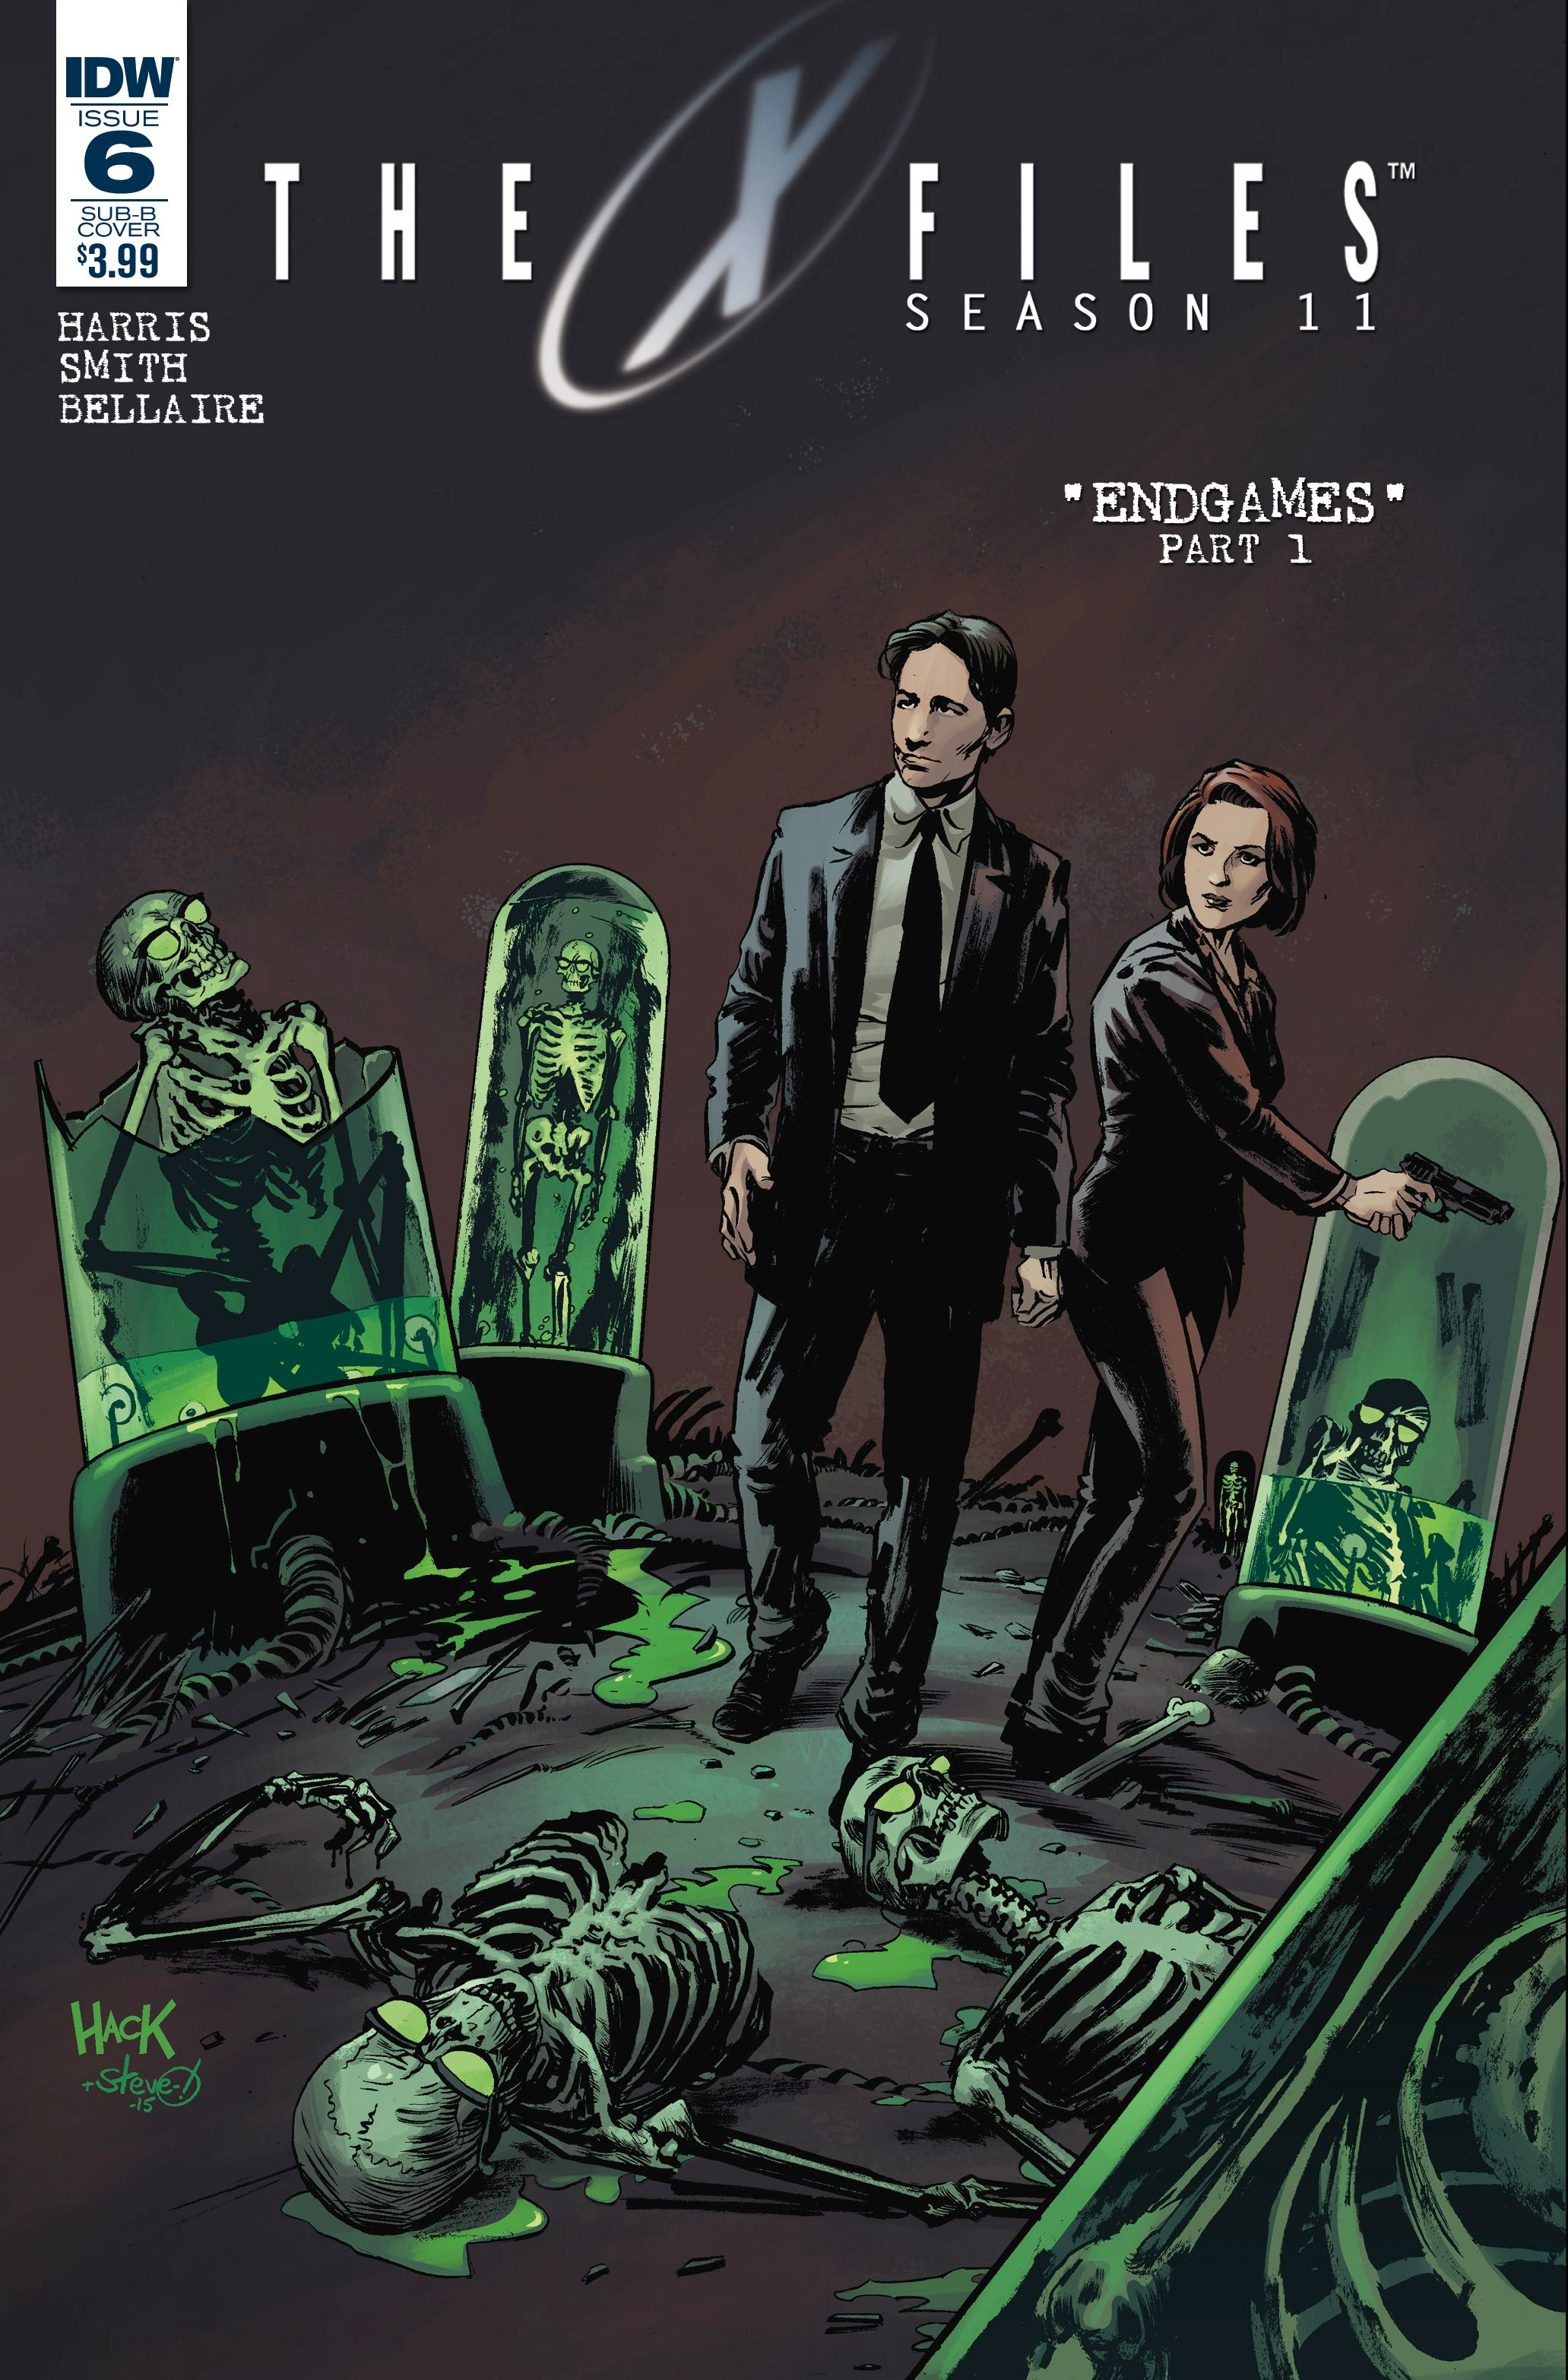 X-FILES SEASON 11 #6 SUBSCRIPTION